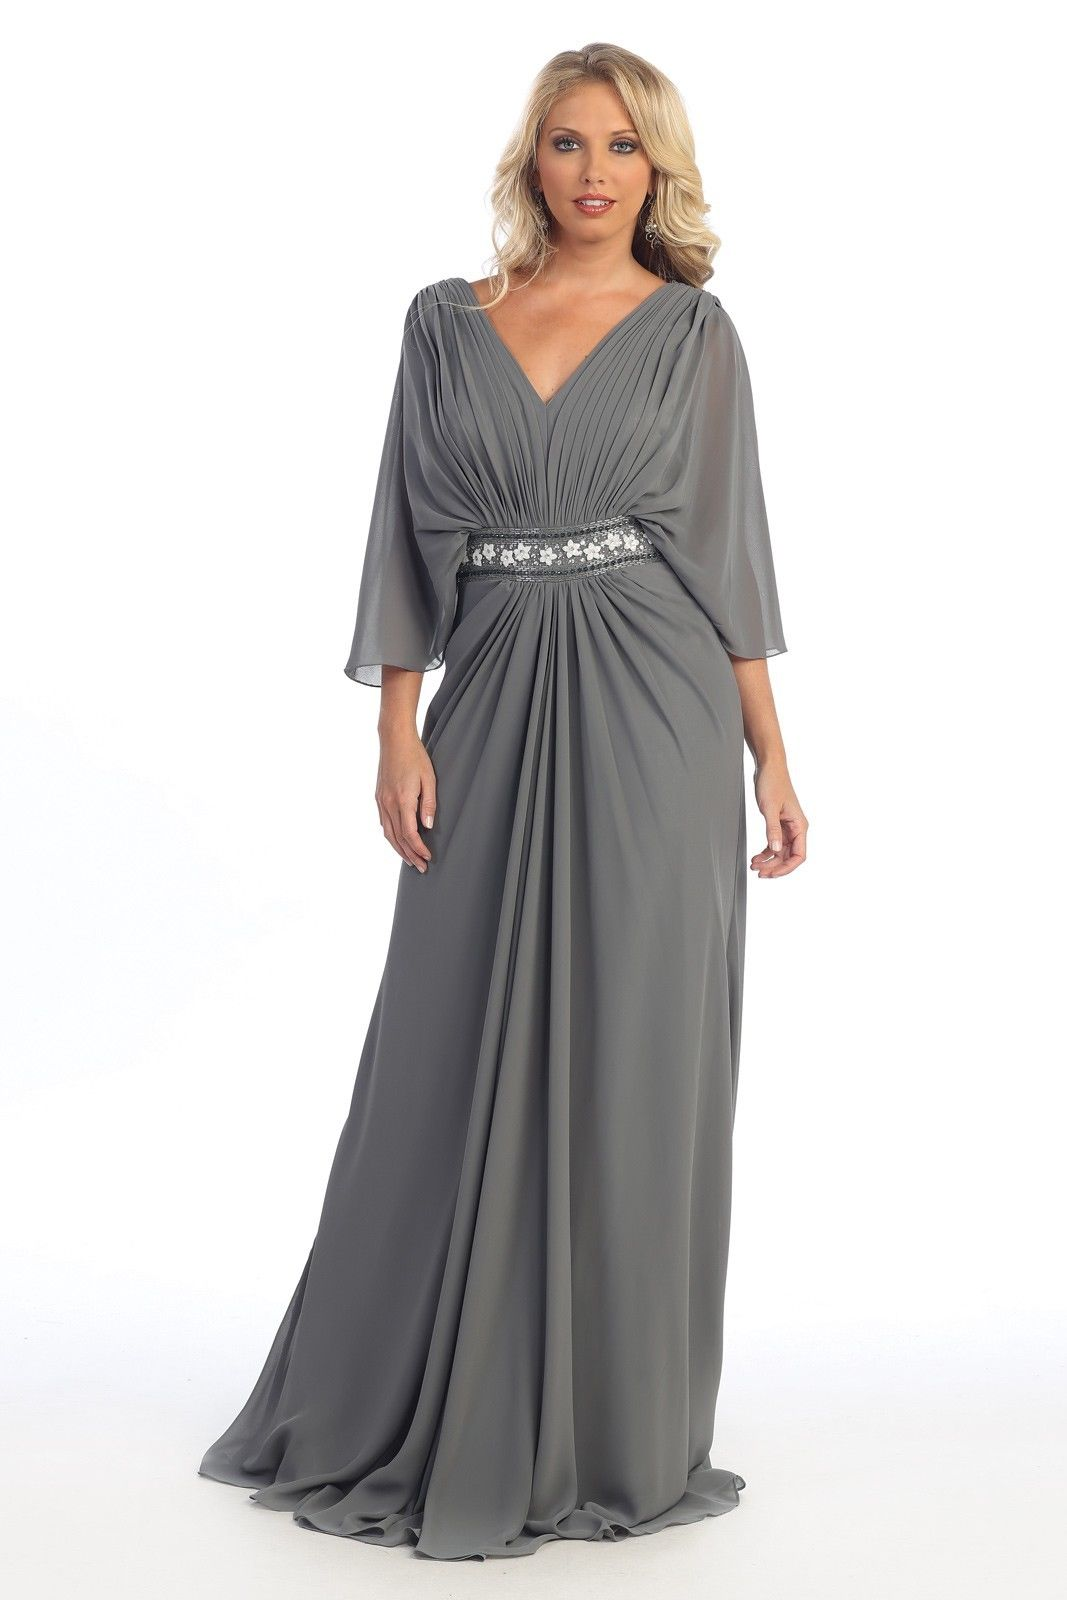 Long Sleeve Fitted Dress Plus Size : Make You Look Like A Princess